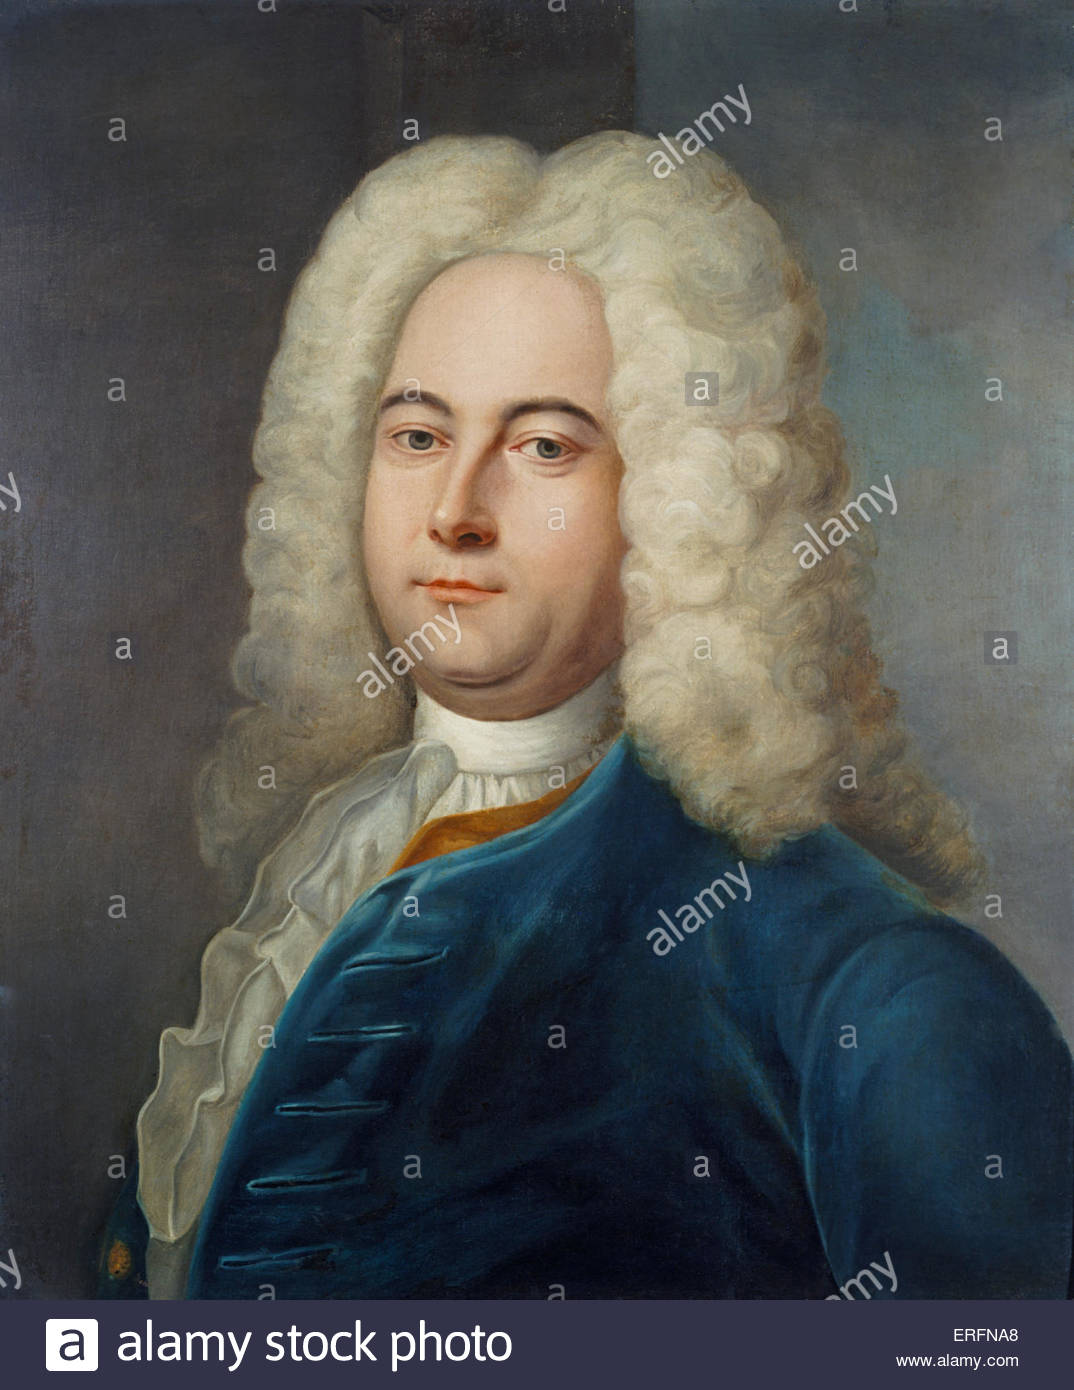 George Frideric Handel - painting by Denner, 1752. Frideric Handel, German-English composer: 23 February 1685 - - Stock Image